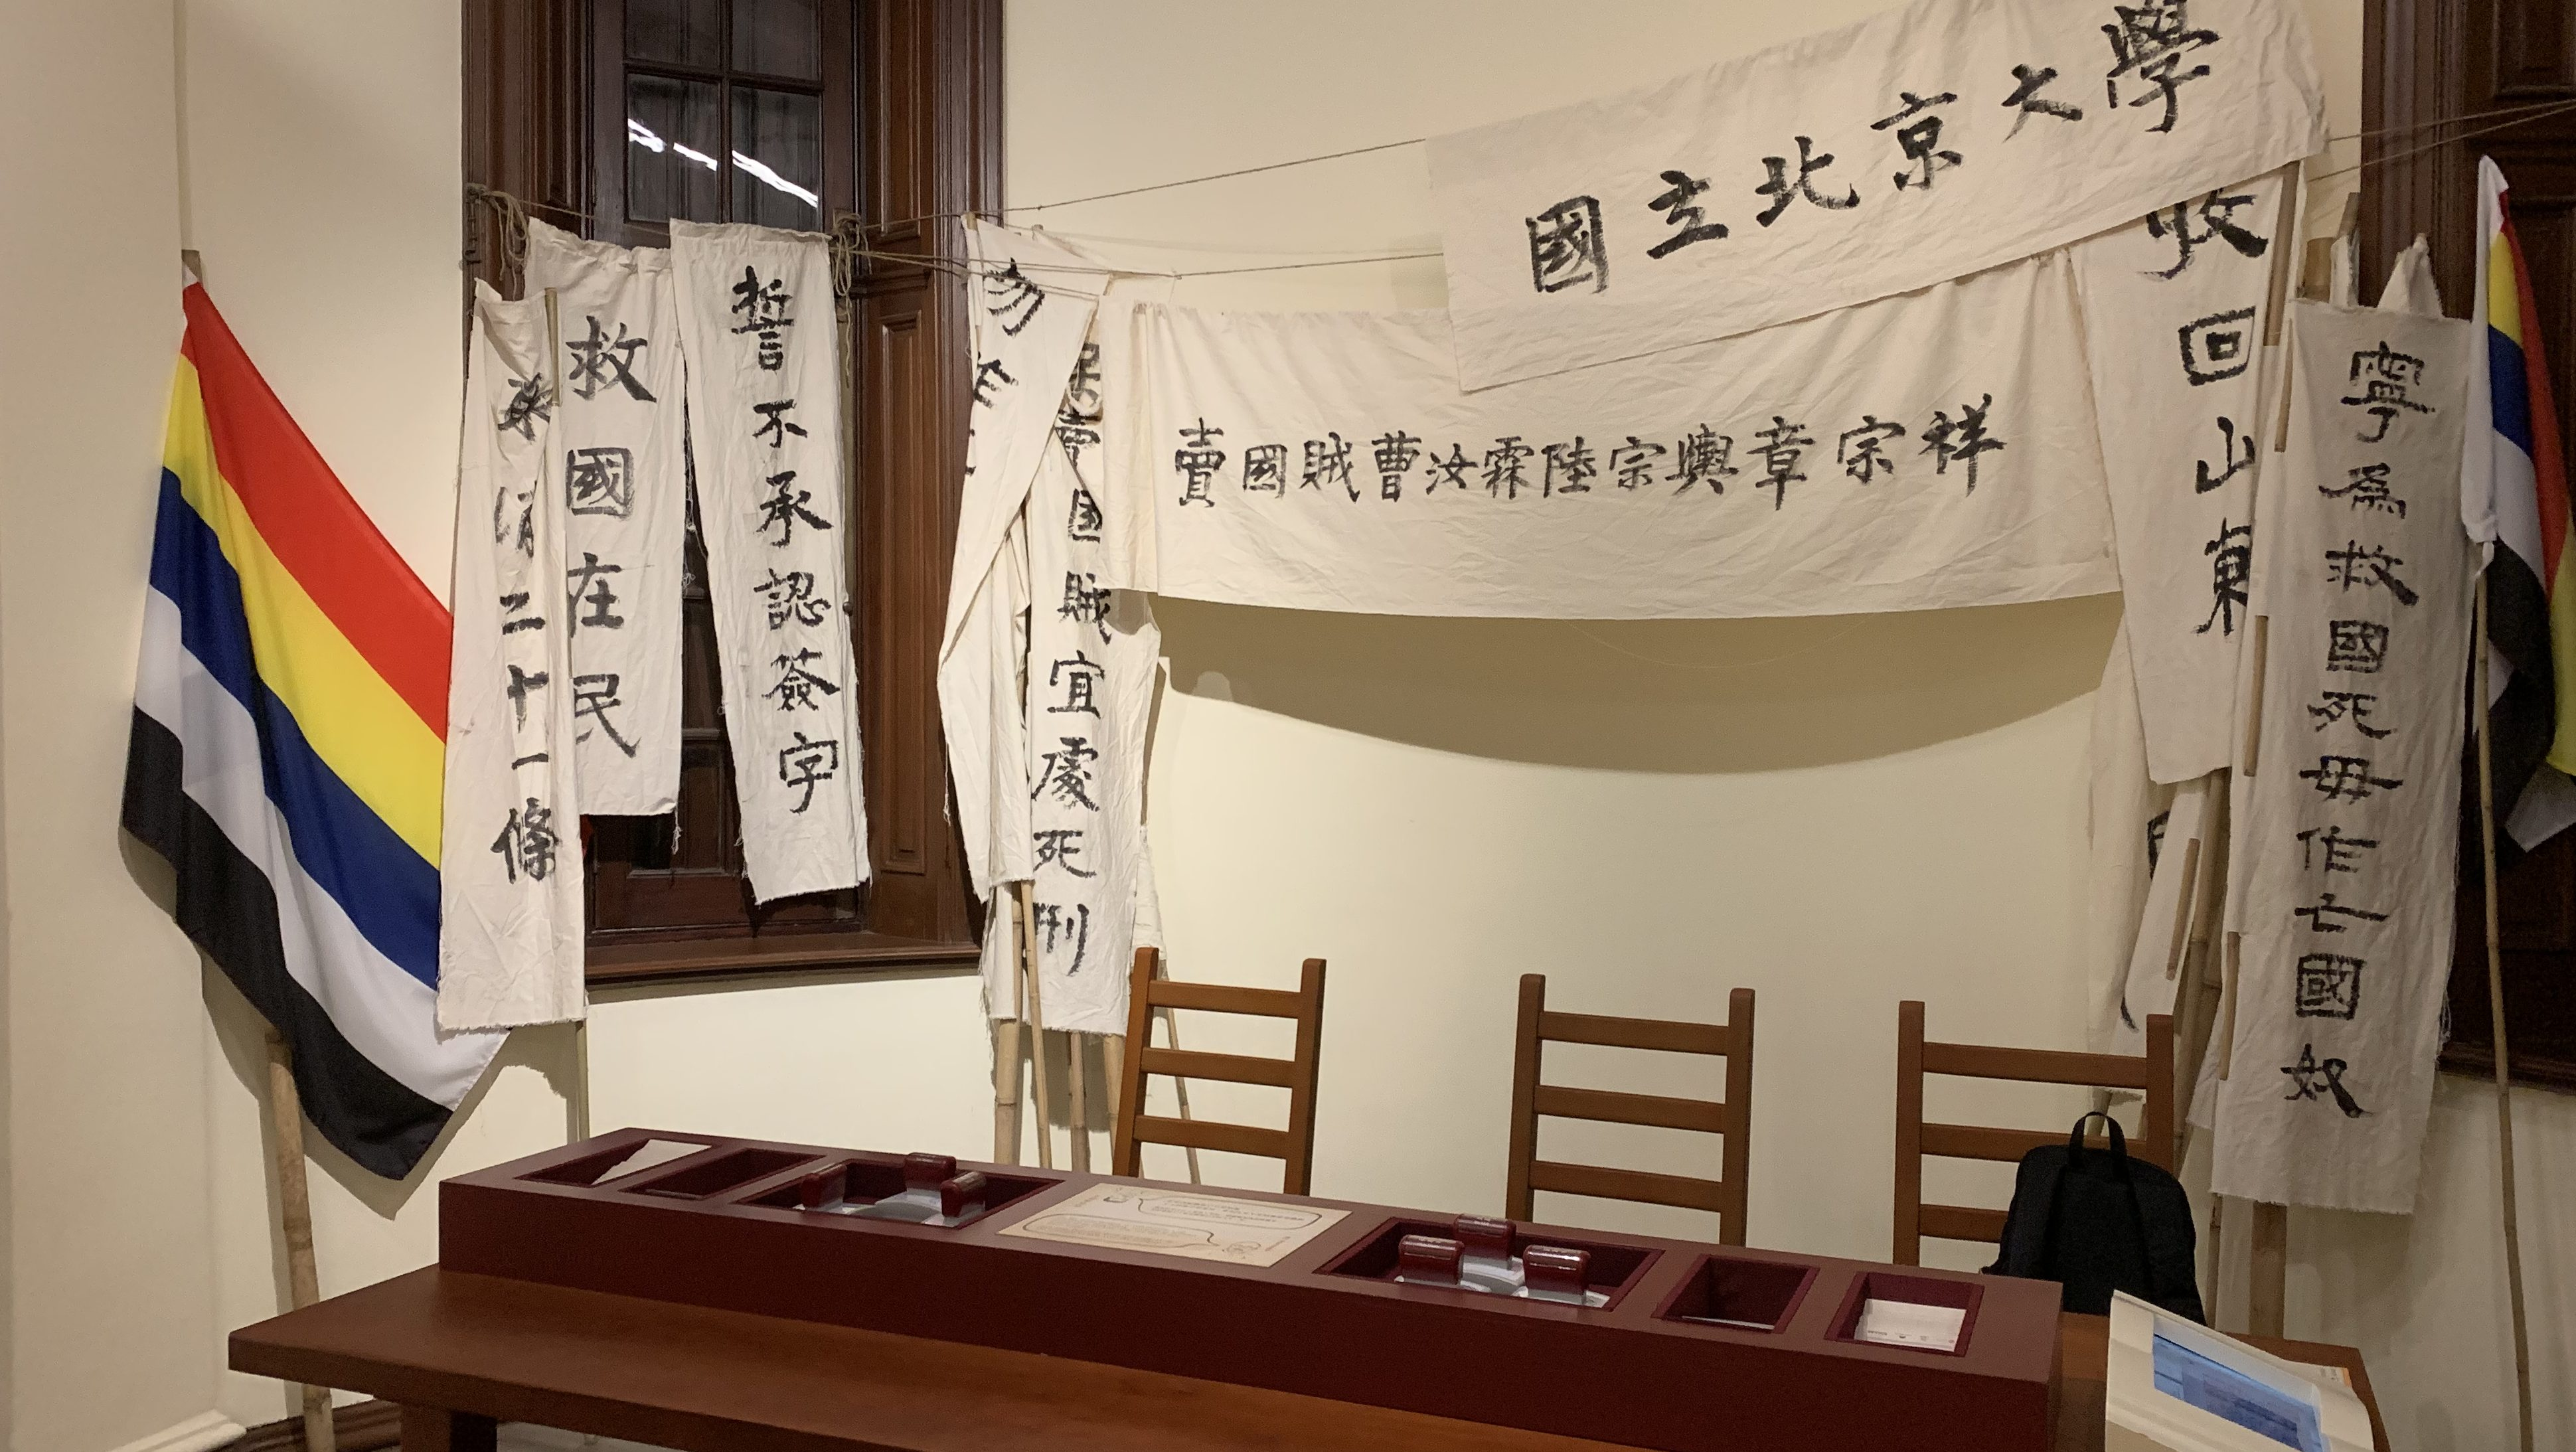 Banners and protest slogans for the May Fourth Movement in an exhibition room in Hong Kong.